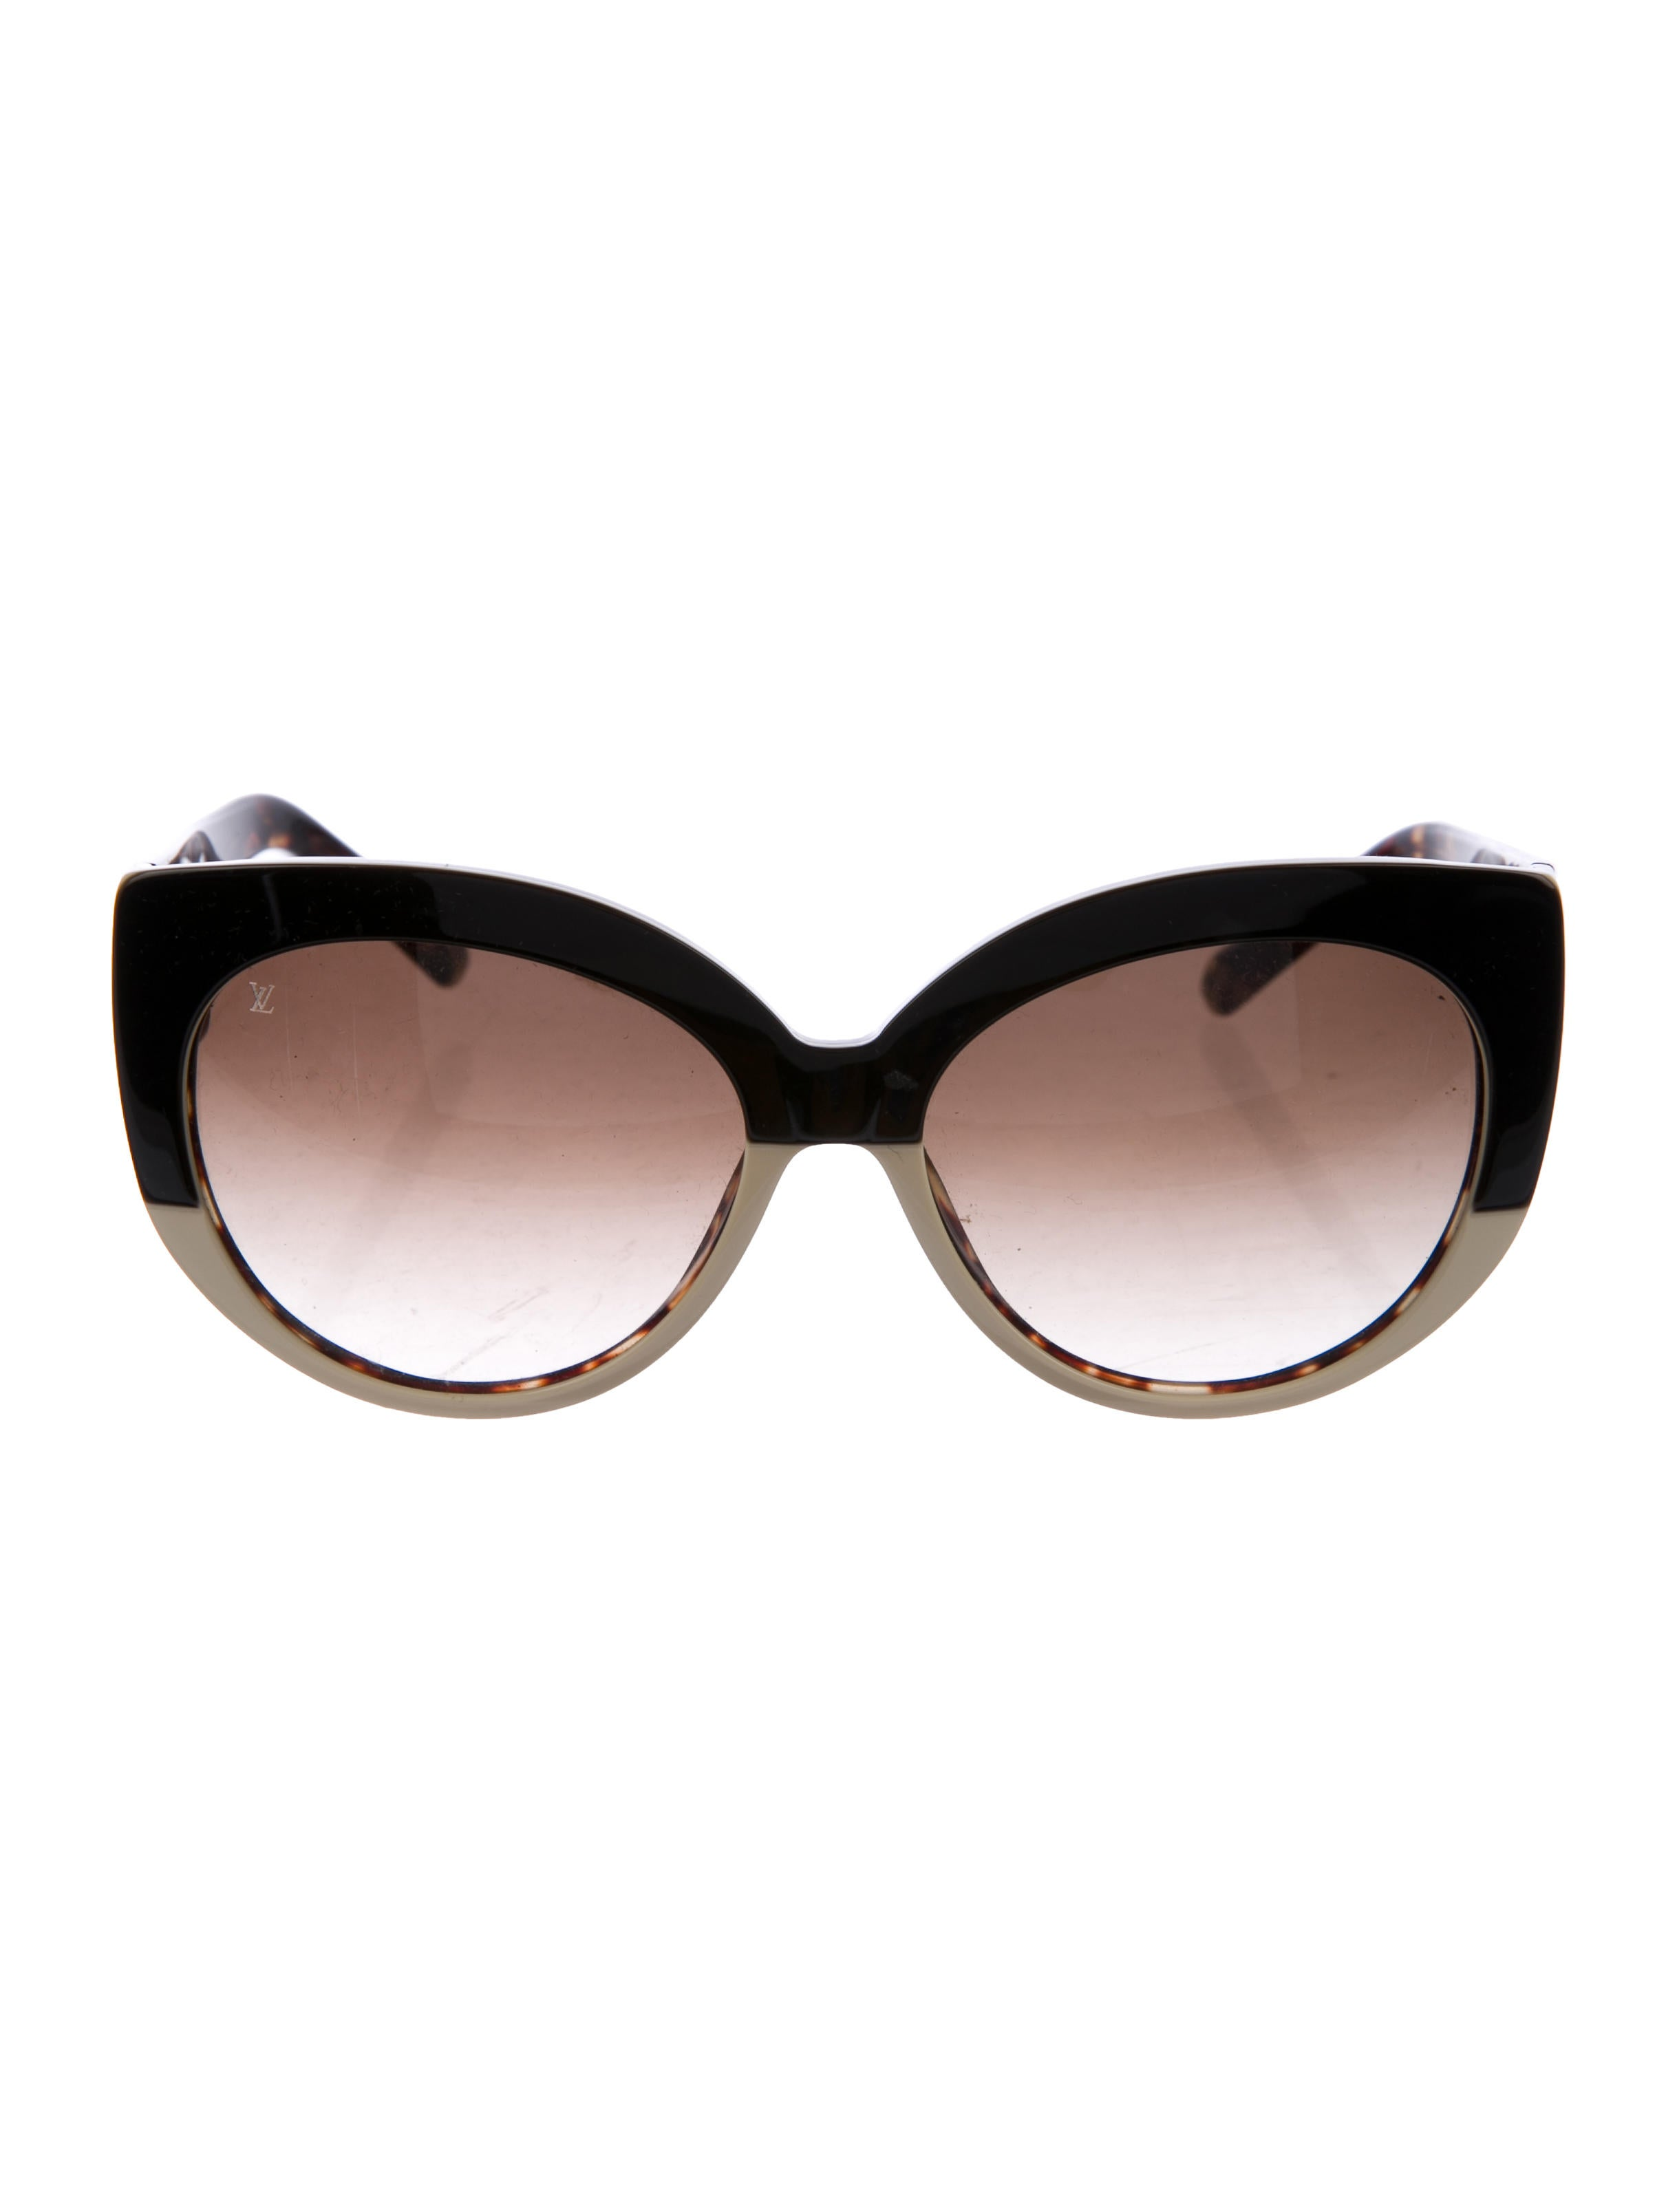 e91f9fa02aa9 Louis Vuitton Veronica Cat-Eye Sunglasses - Accessories - LOU157684 ...